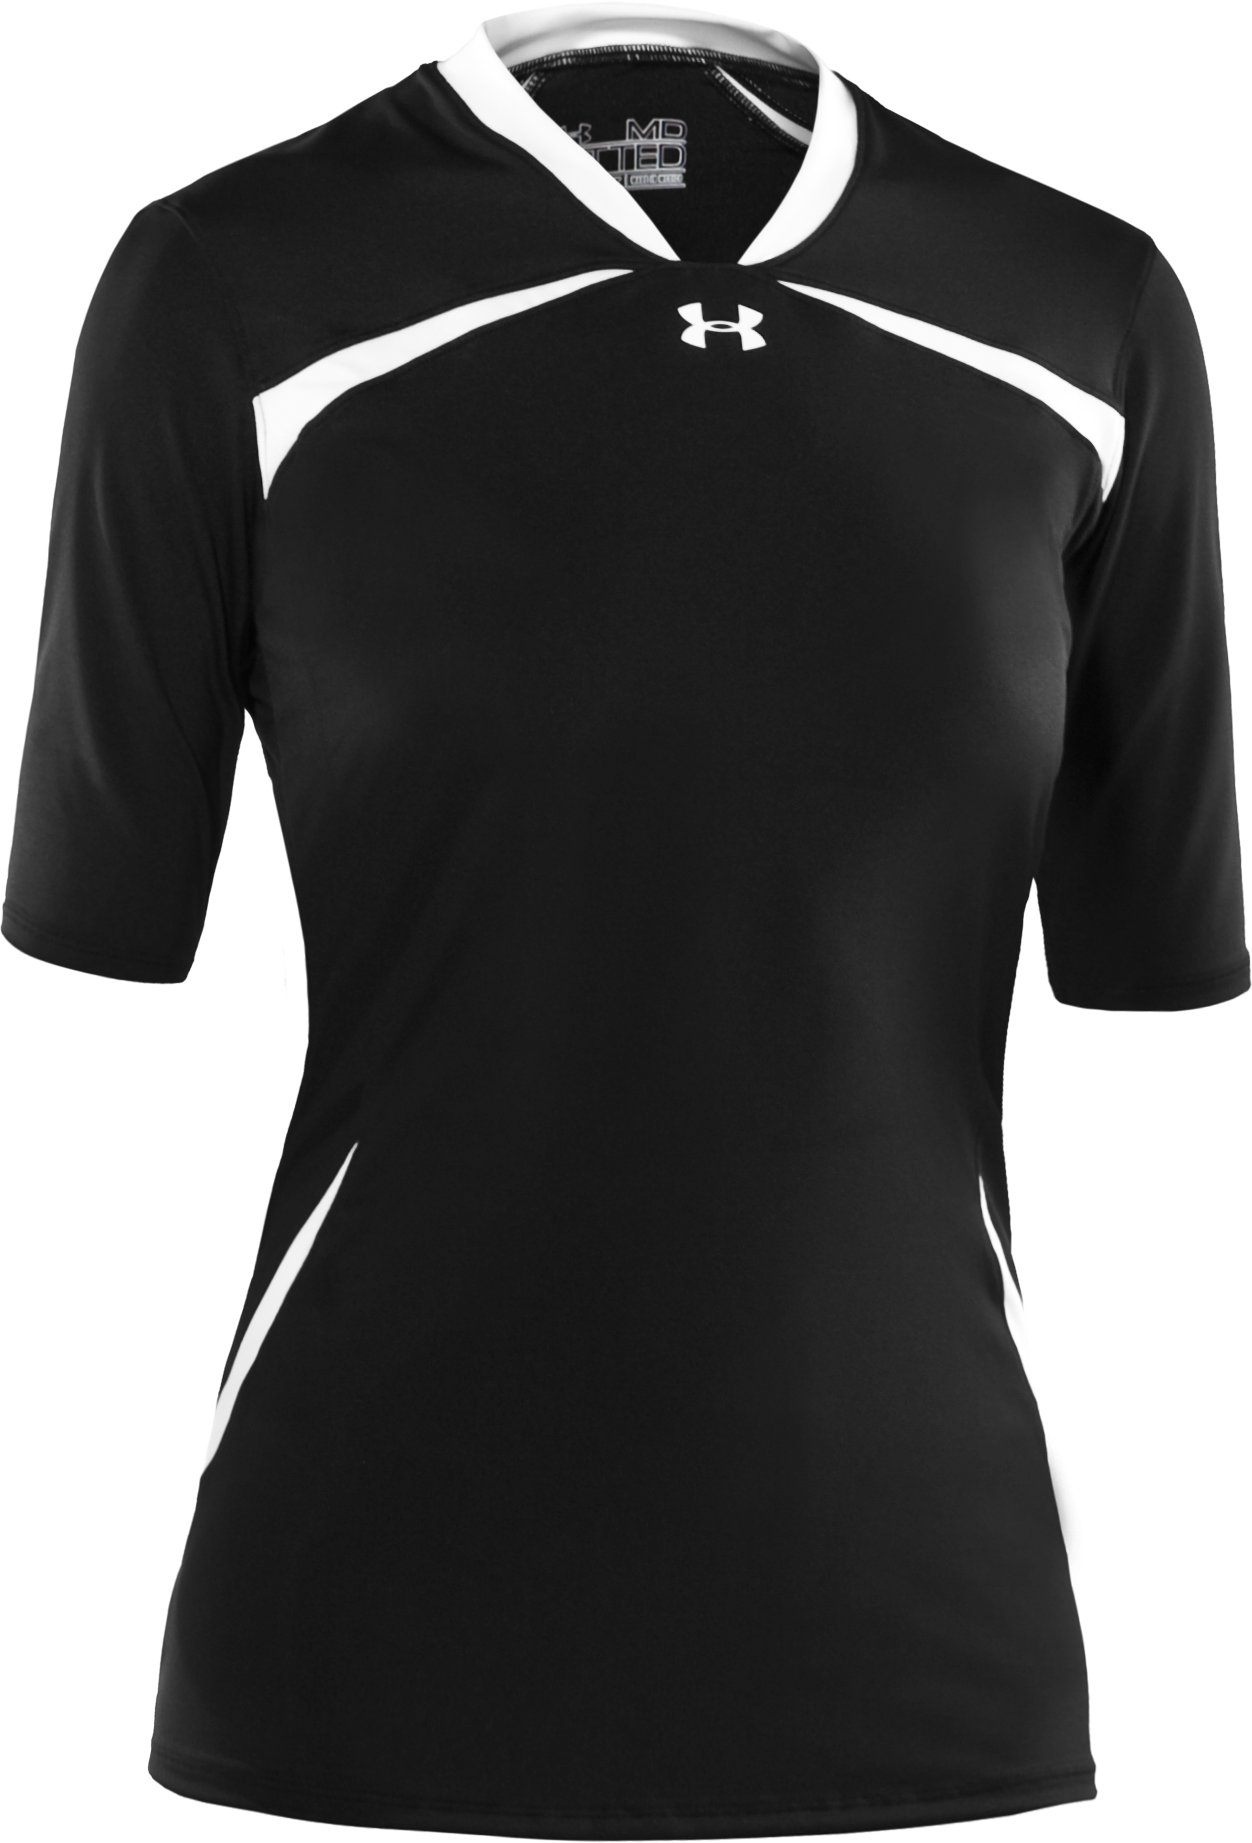 Women's UA Elevate ½ Sleeve Volleyball Jersey, Black